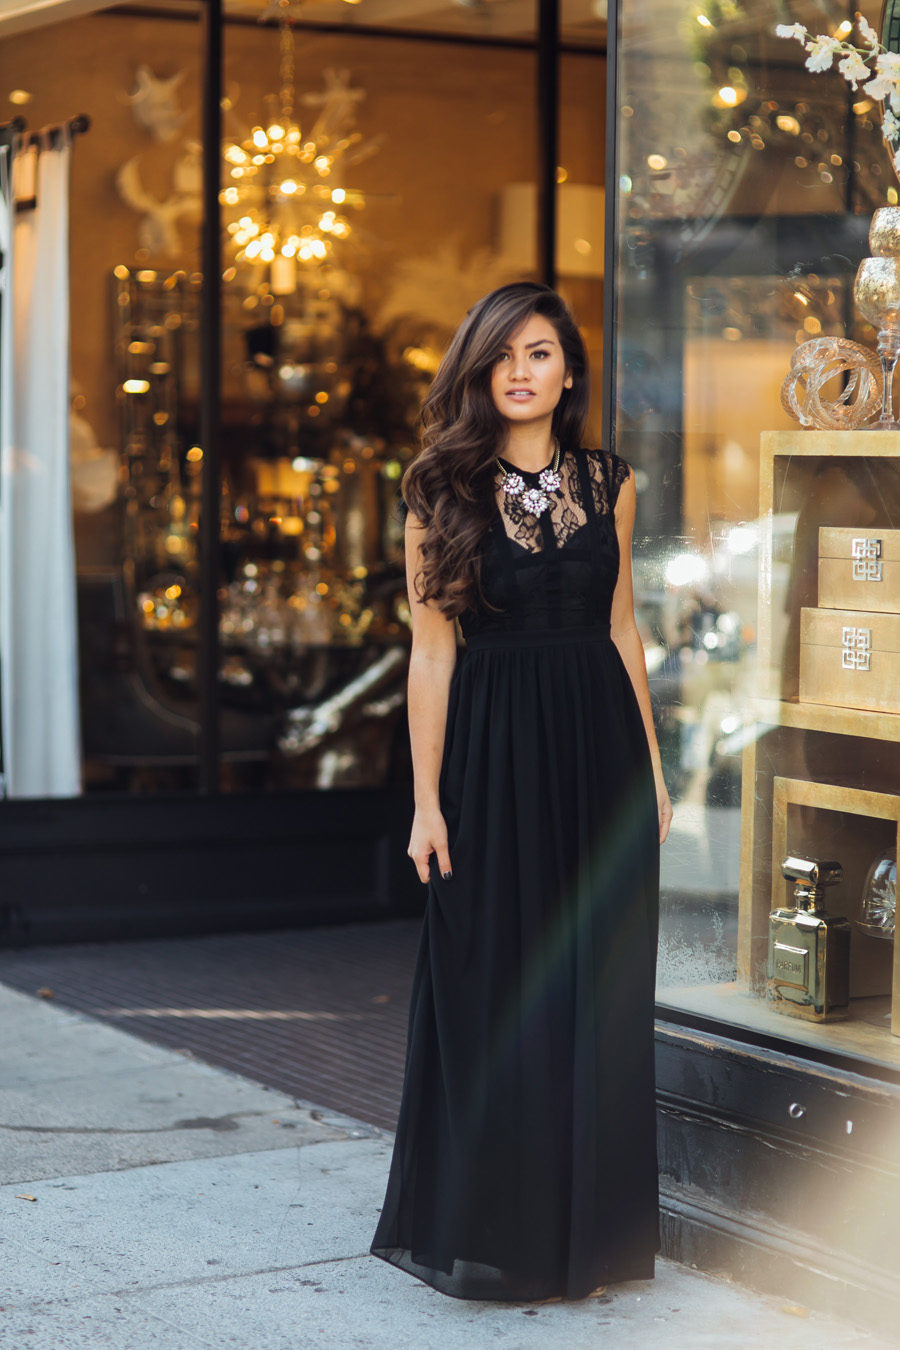 Caila Quinn 25th Birthday Black Morning Lavender Long Dress